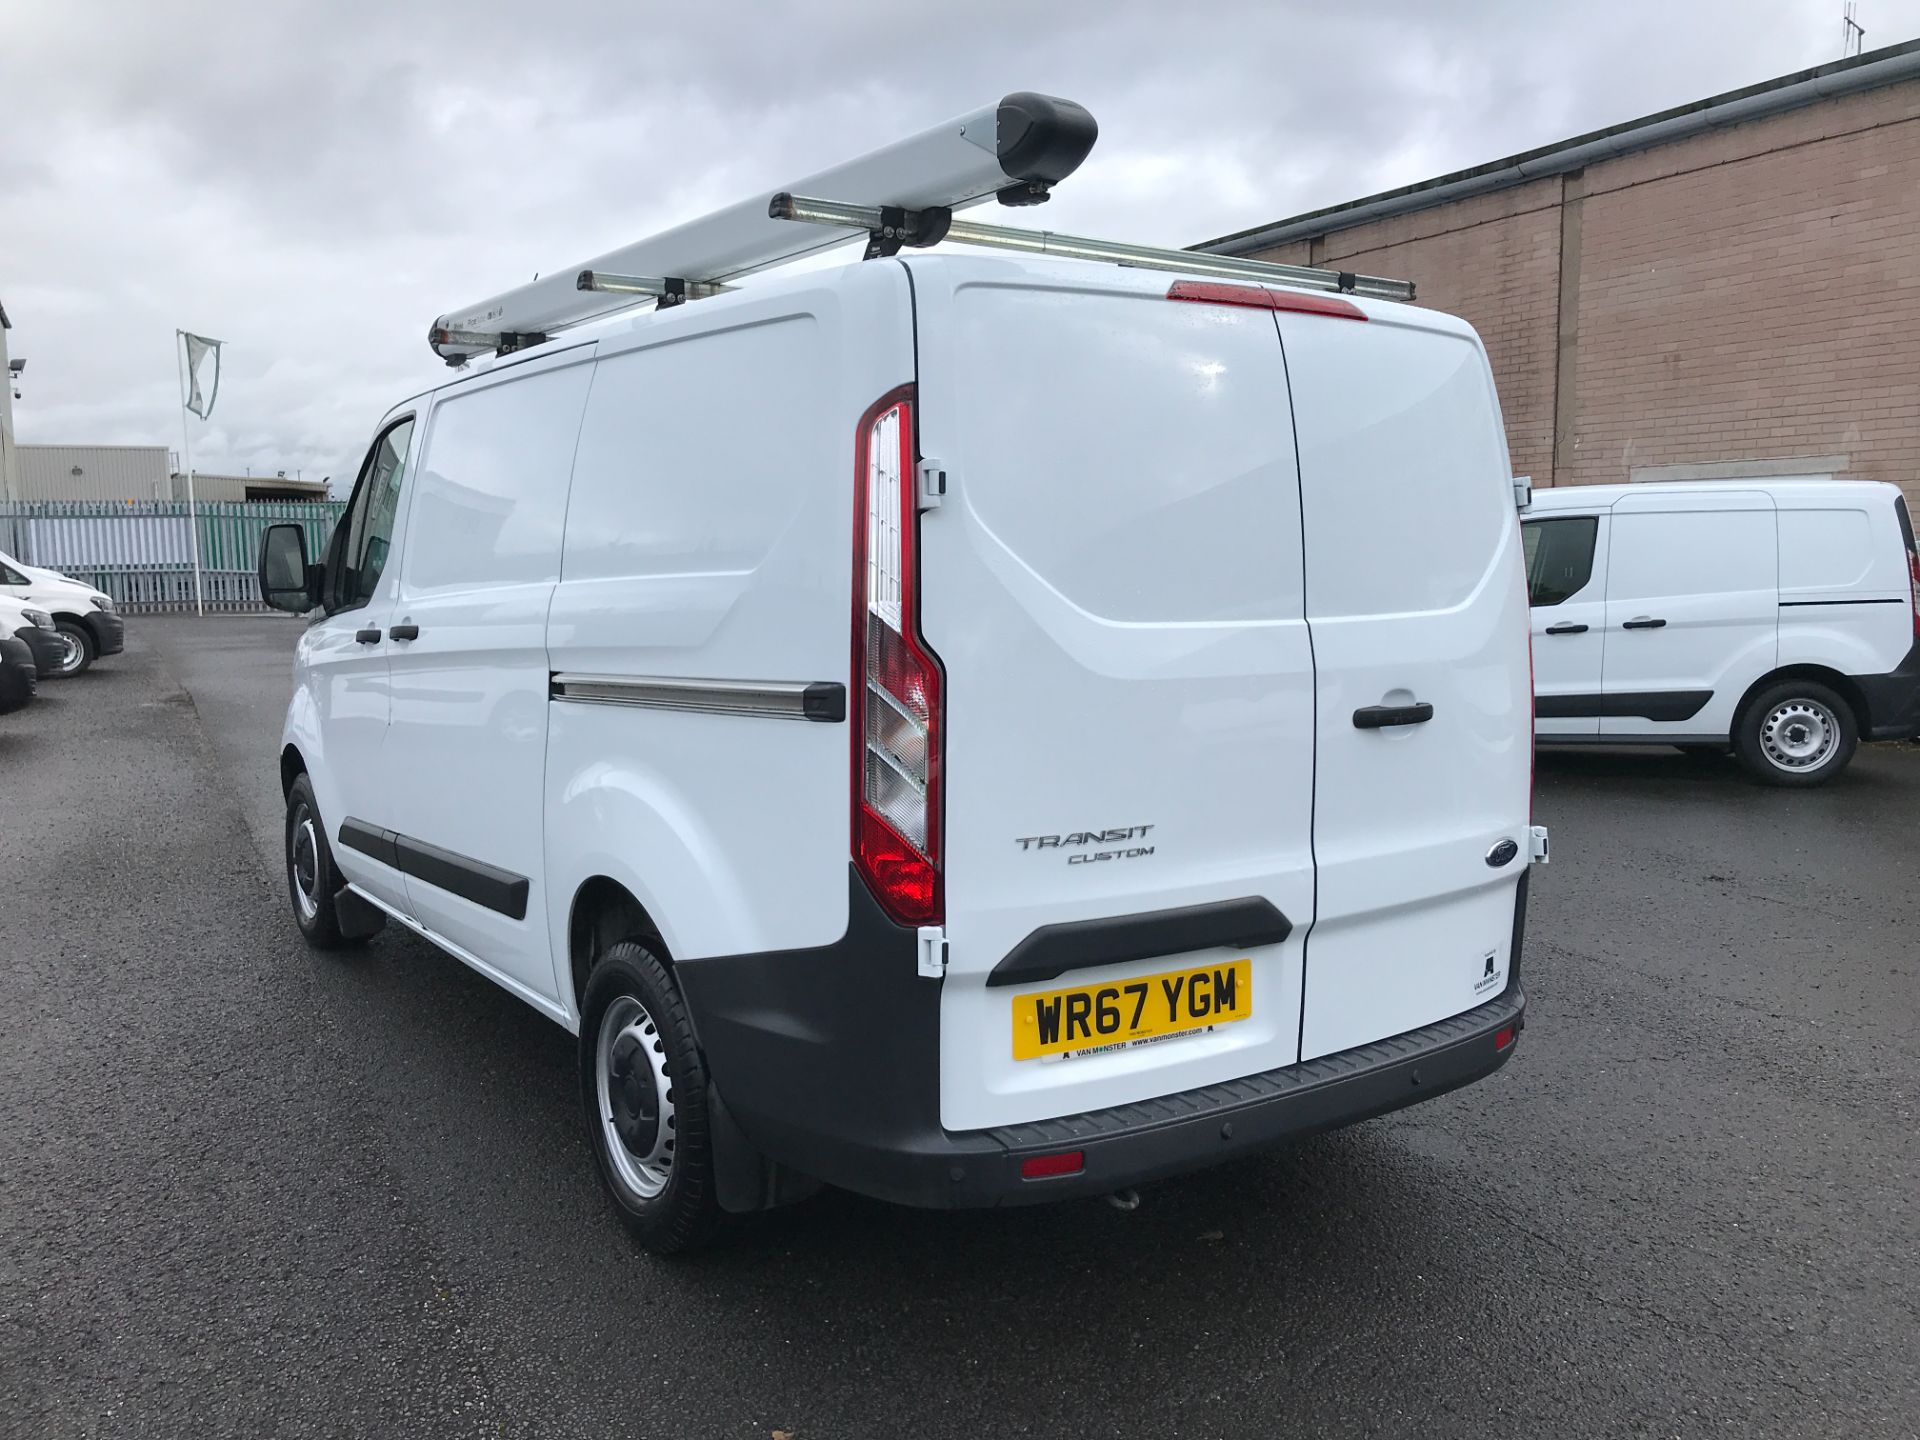 2018 Ford Transit Custom  290 L1 2.0TDCI 105PS LOW ROOF EURO 6 (WR67YGM) Image 4